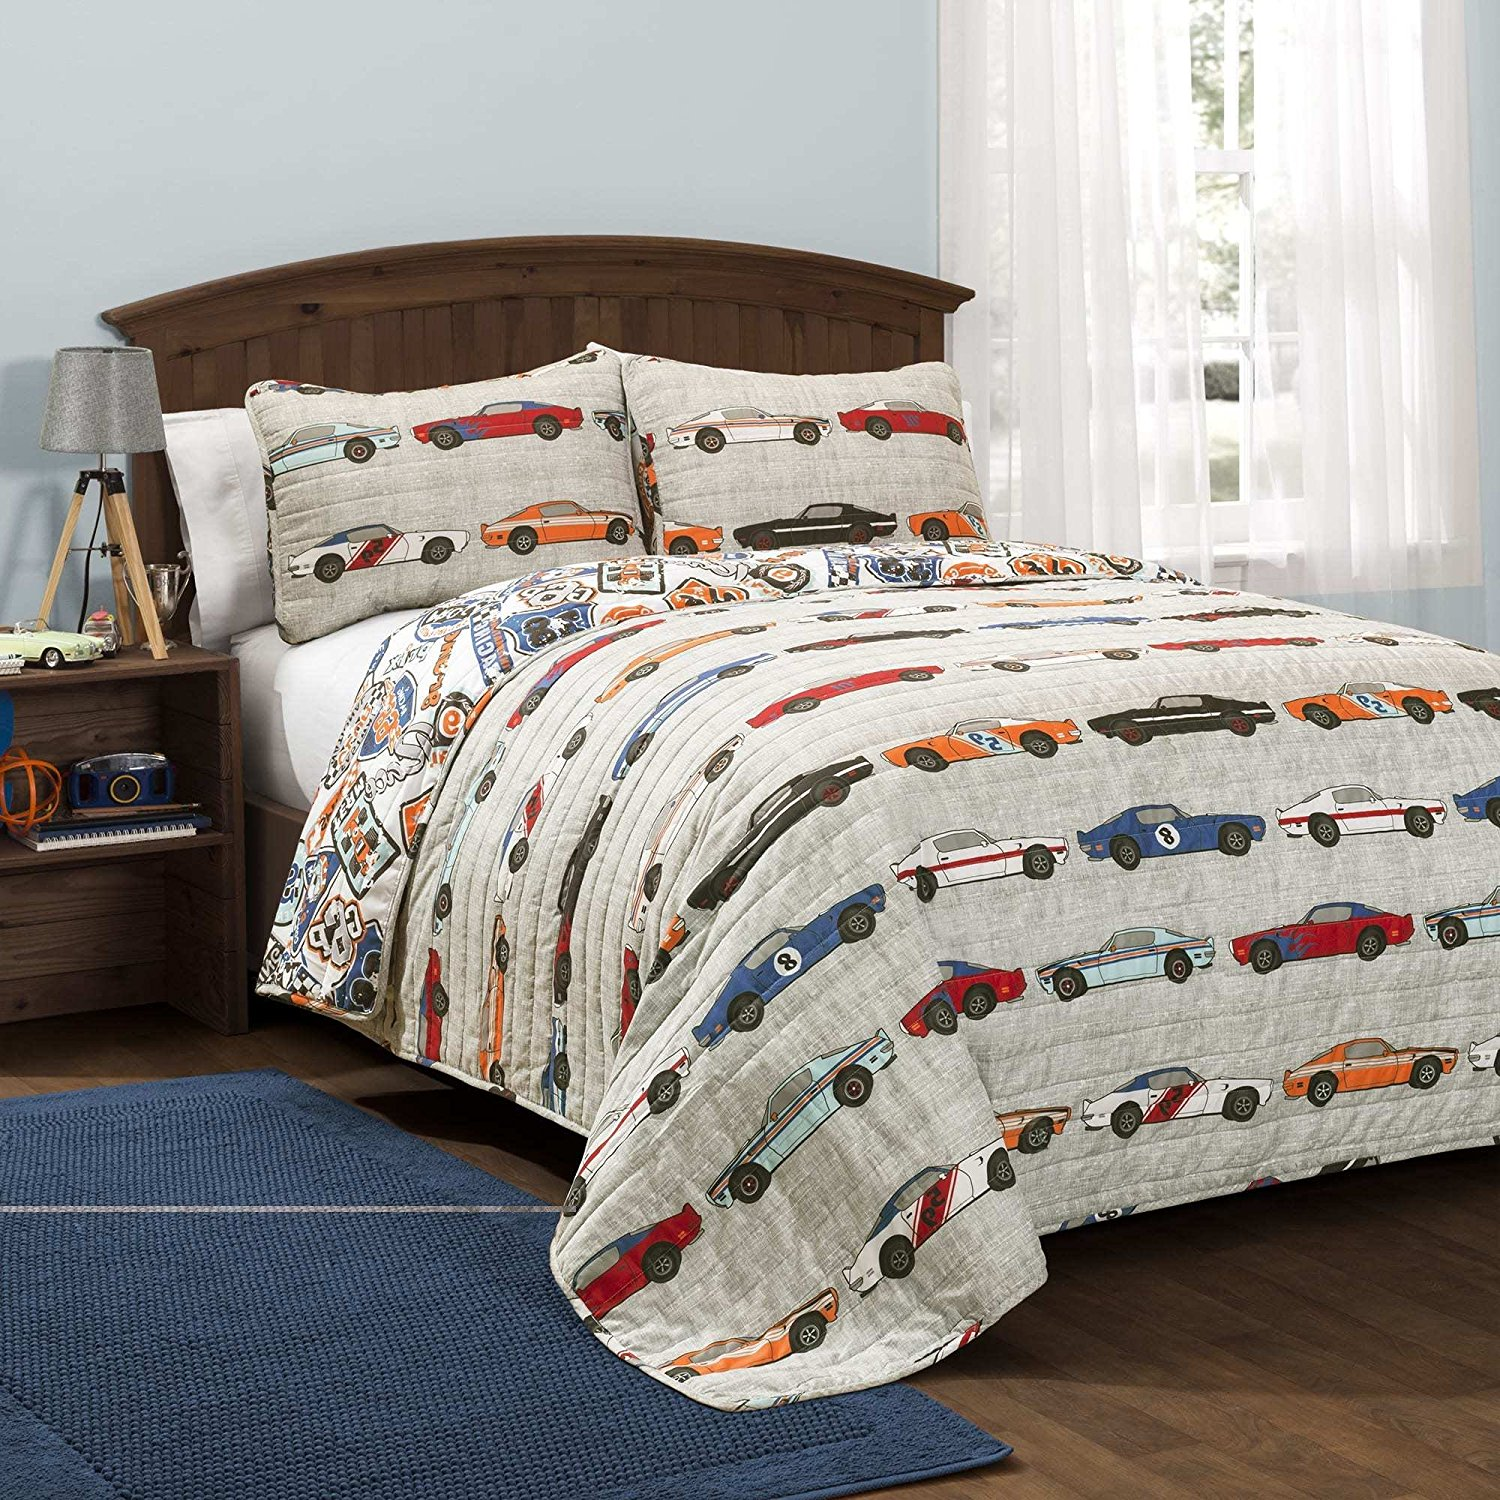 3 Piece Adorable Blue Red Yellow Grey White Full Queen Quilt Set, Race Car Themed Reversible Bedding Colorful Fun Cute Cars Road Novelty Boys Teen Kids Racing Auto, Polyester